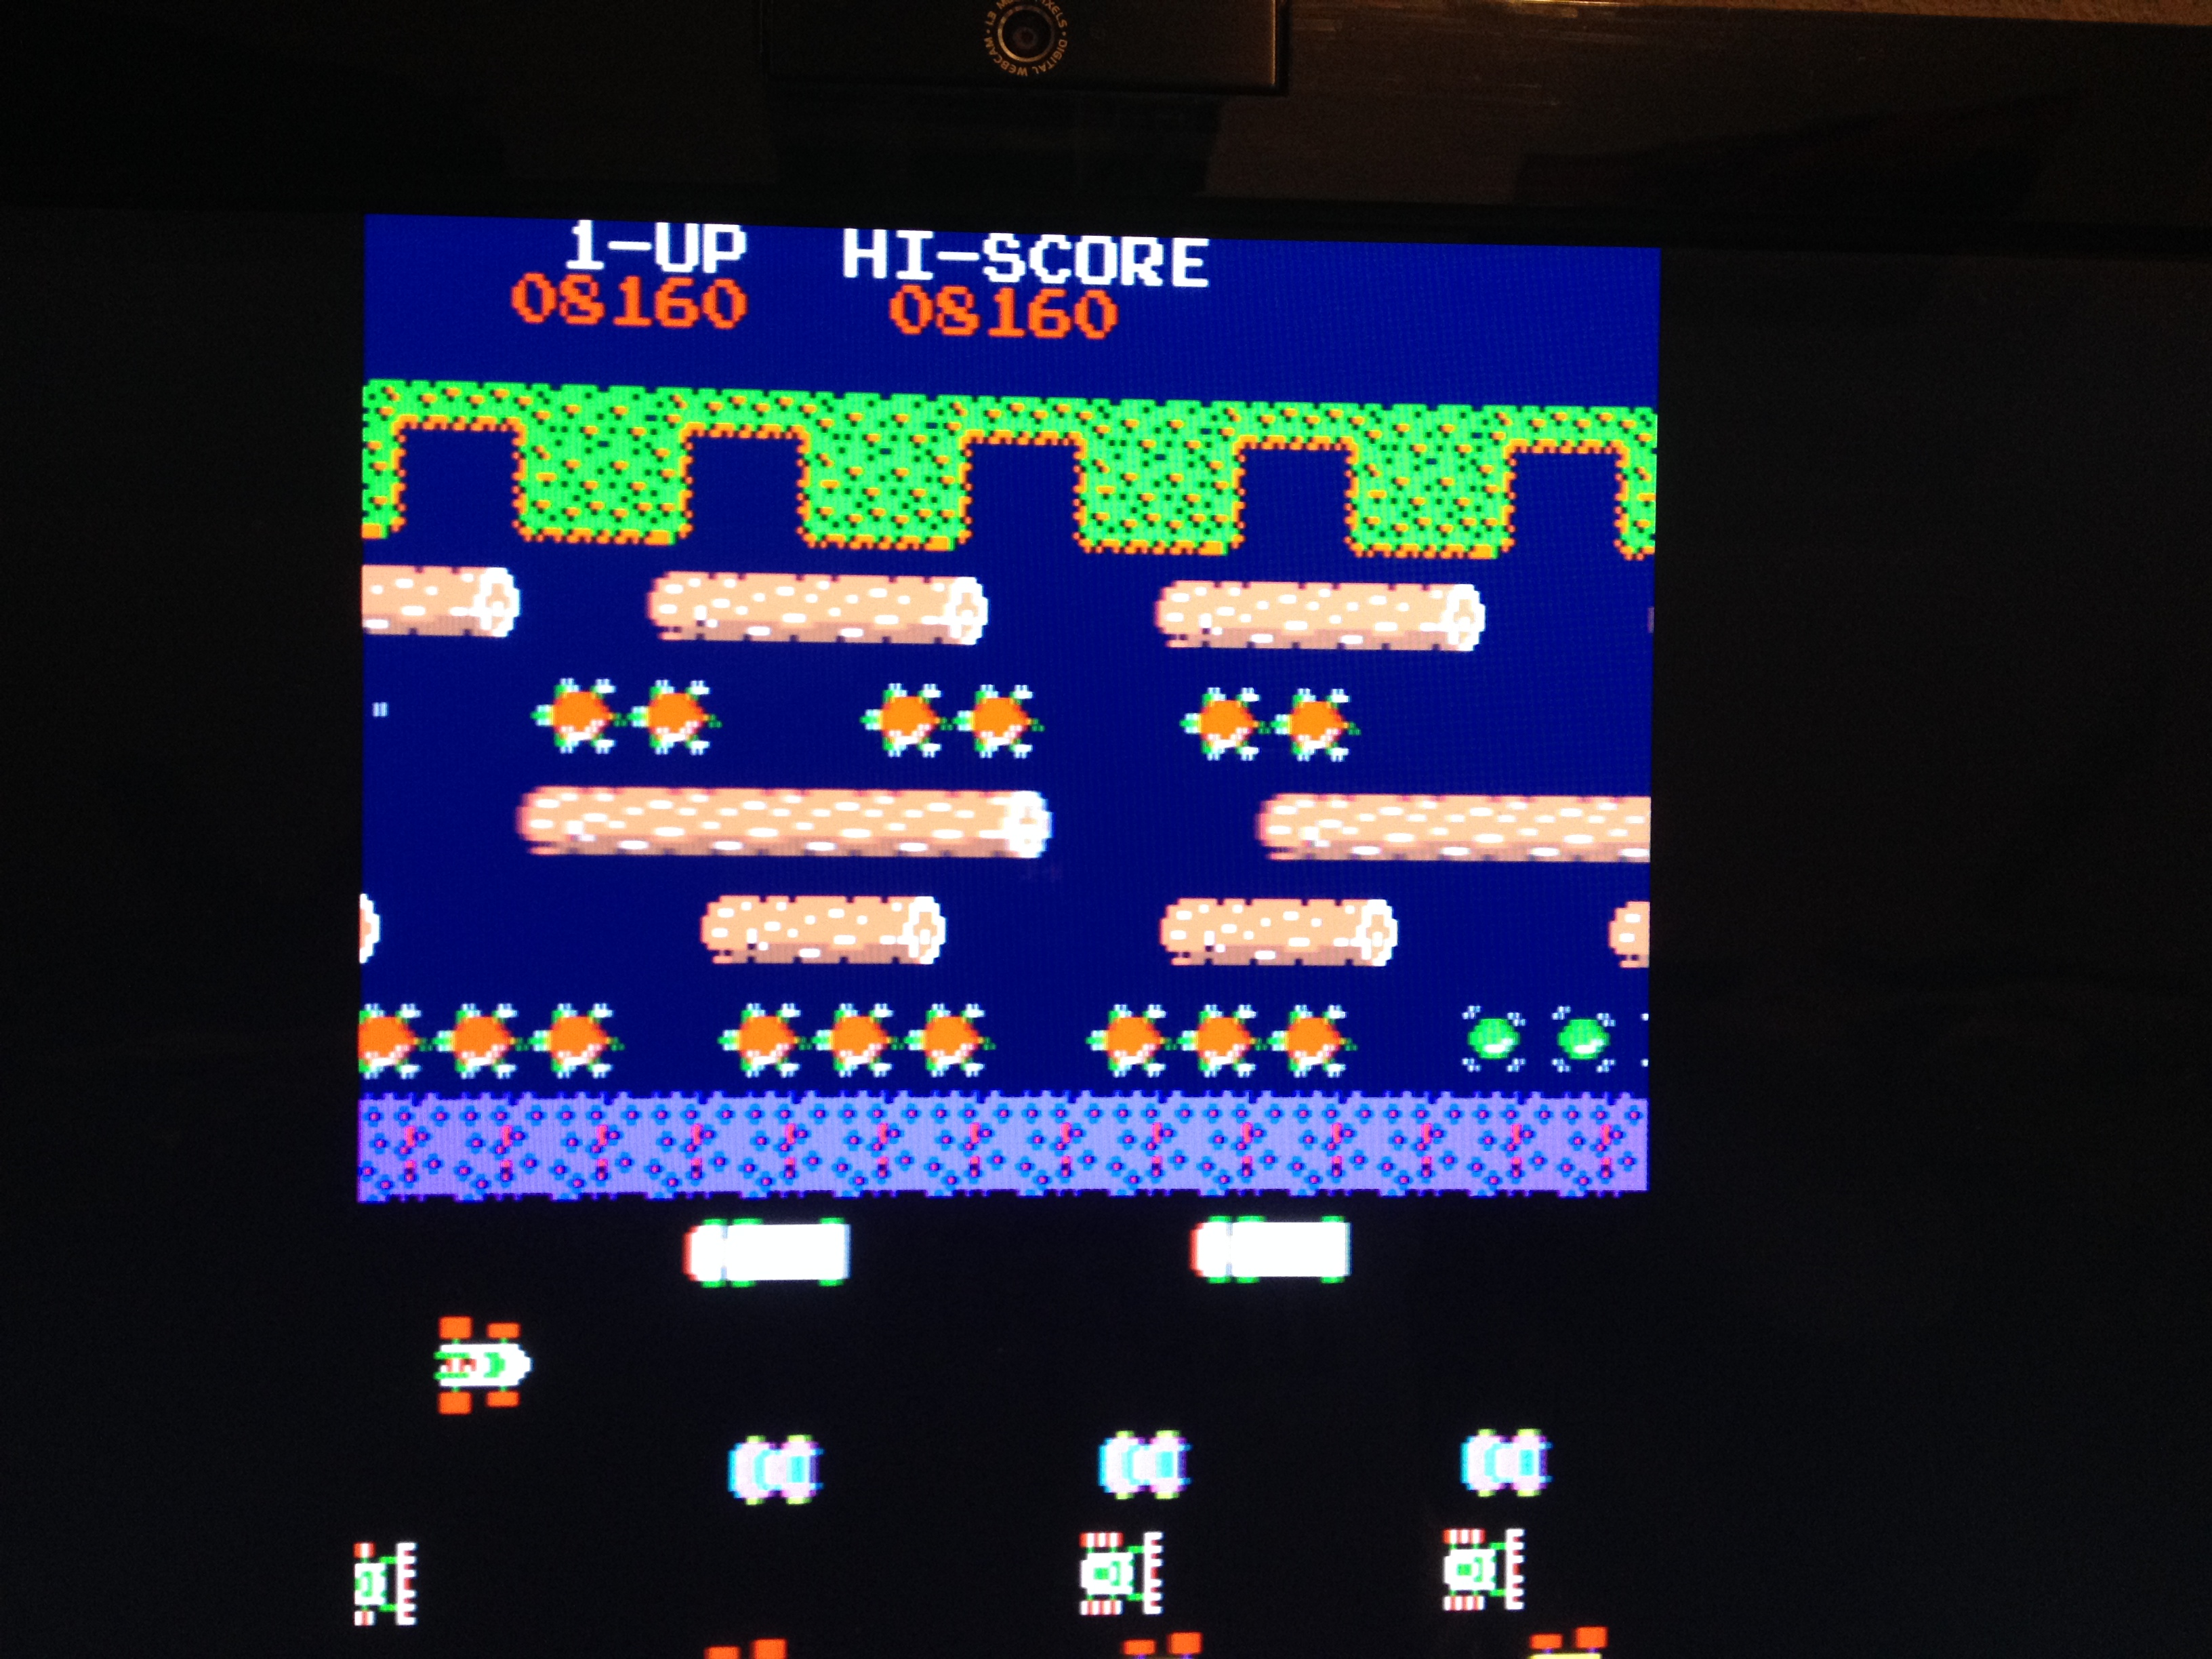 Frogger 8,160 points